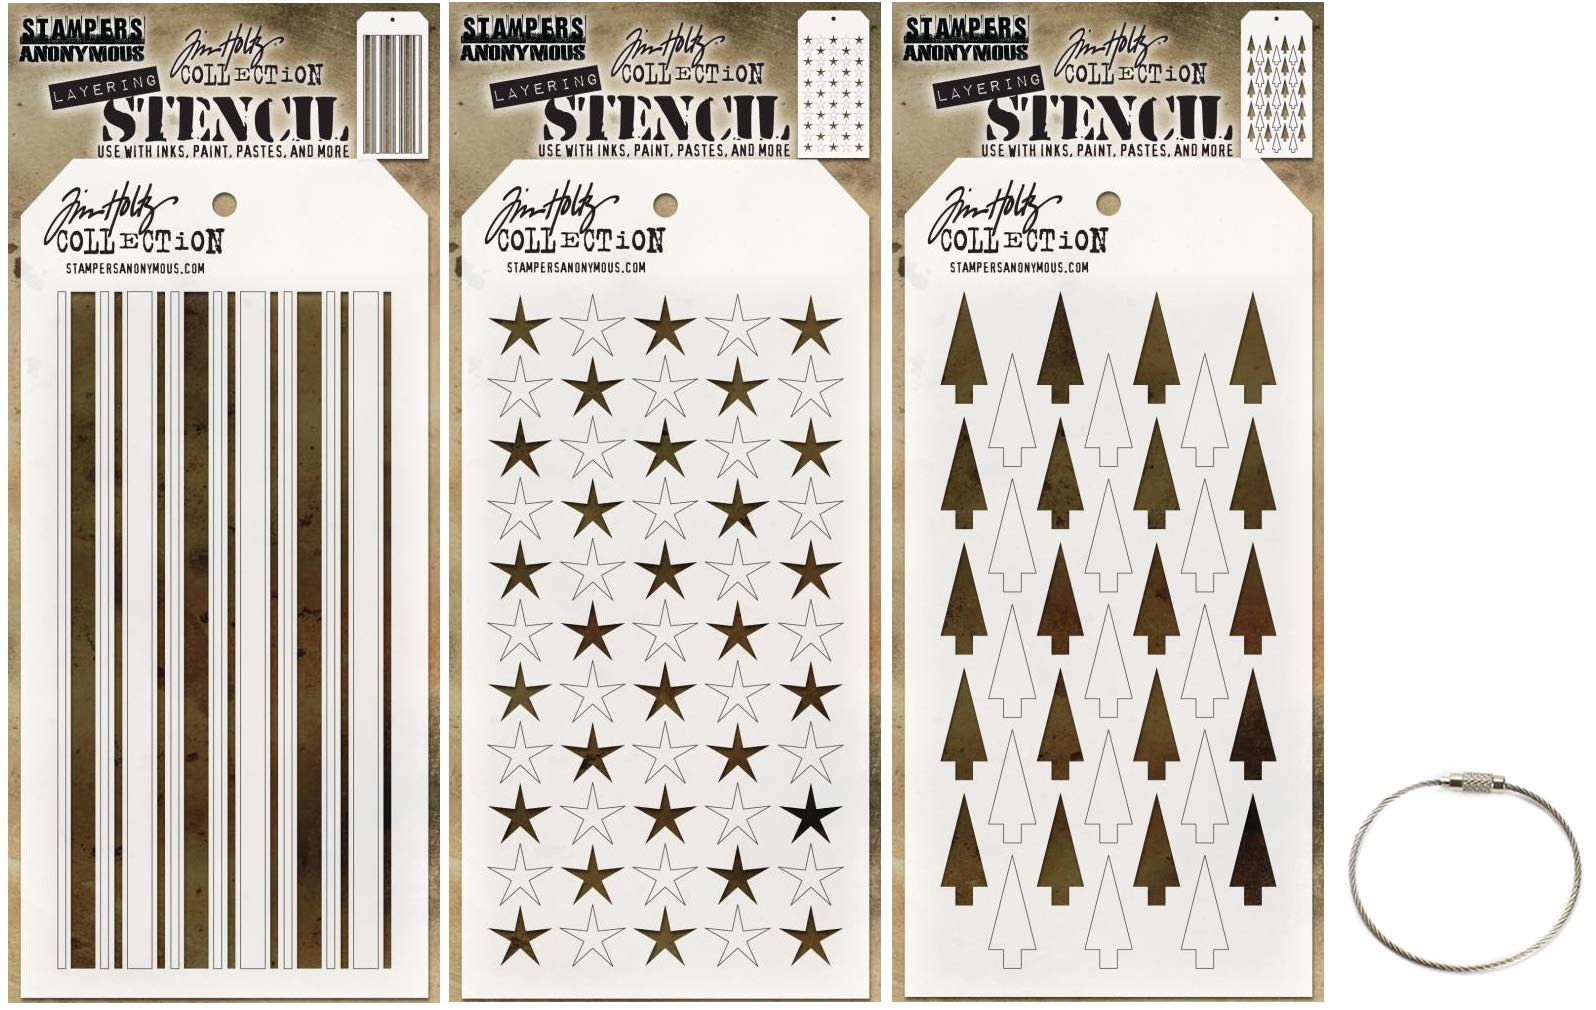 Tim Holtz Shifter Stencils - Shifter Mint, Shifter Stars and Shifter Tree - Winter 2018 Set Includes Cable Ring - 4 Items by Tim Holtz